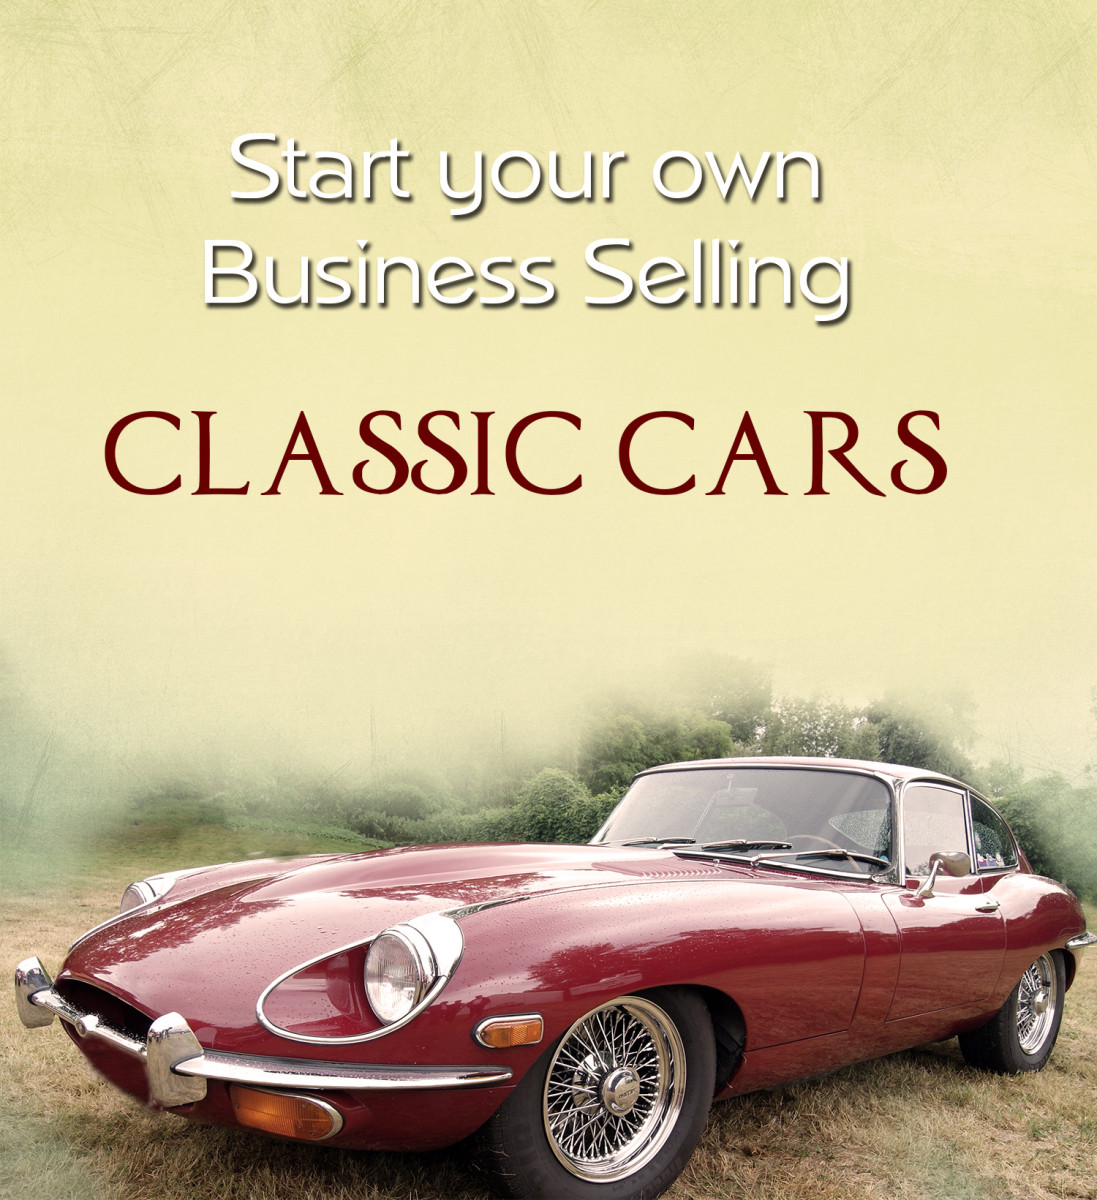 How to Start Your Own Business Selling Classic Cars